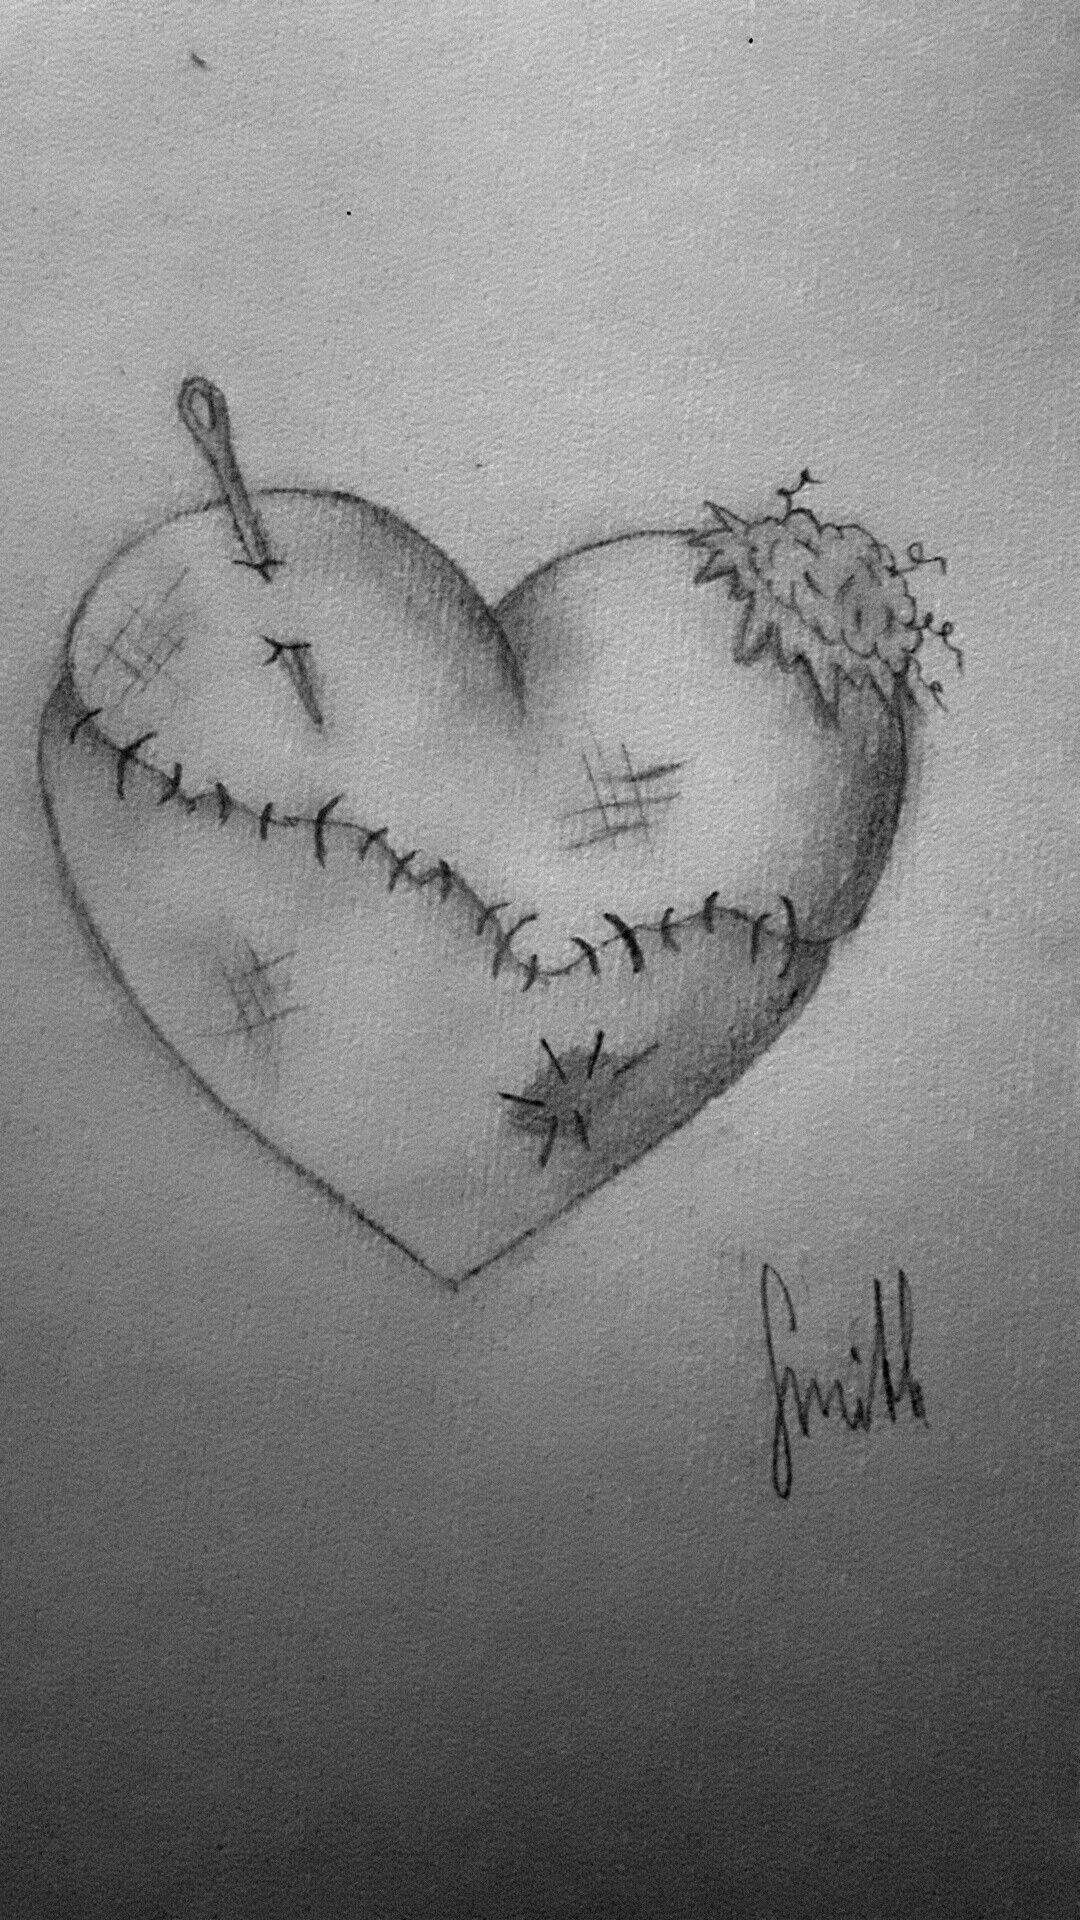 Broken heart brokenheart fixed pierced patch pieces fallingtopieces scratches cut drawing deep sad